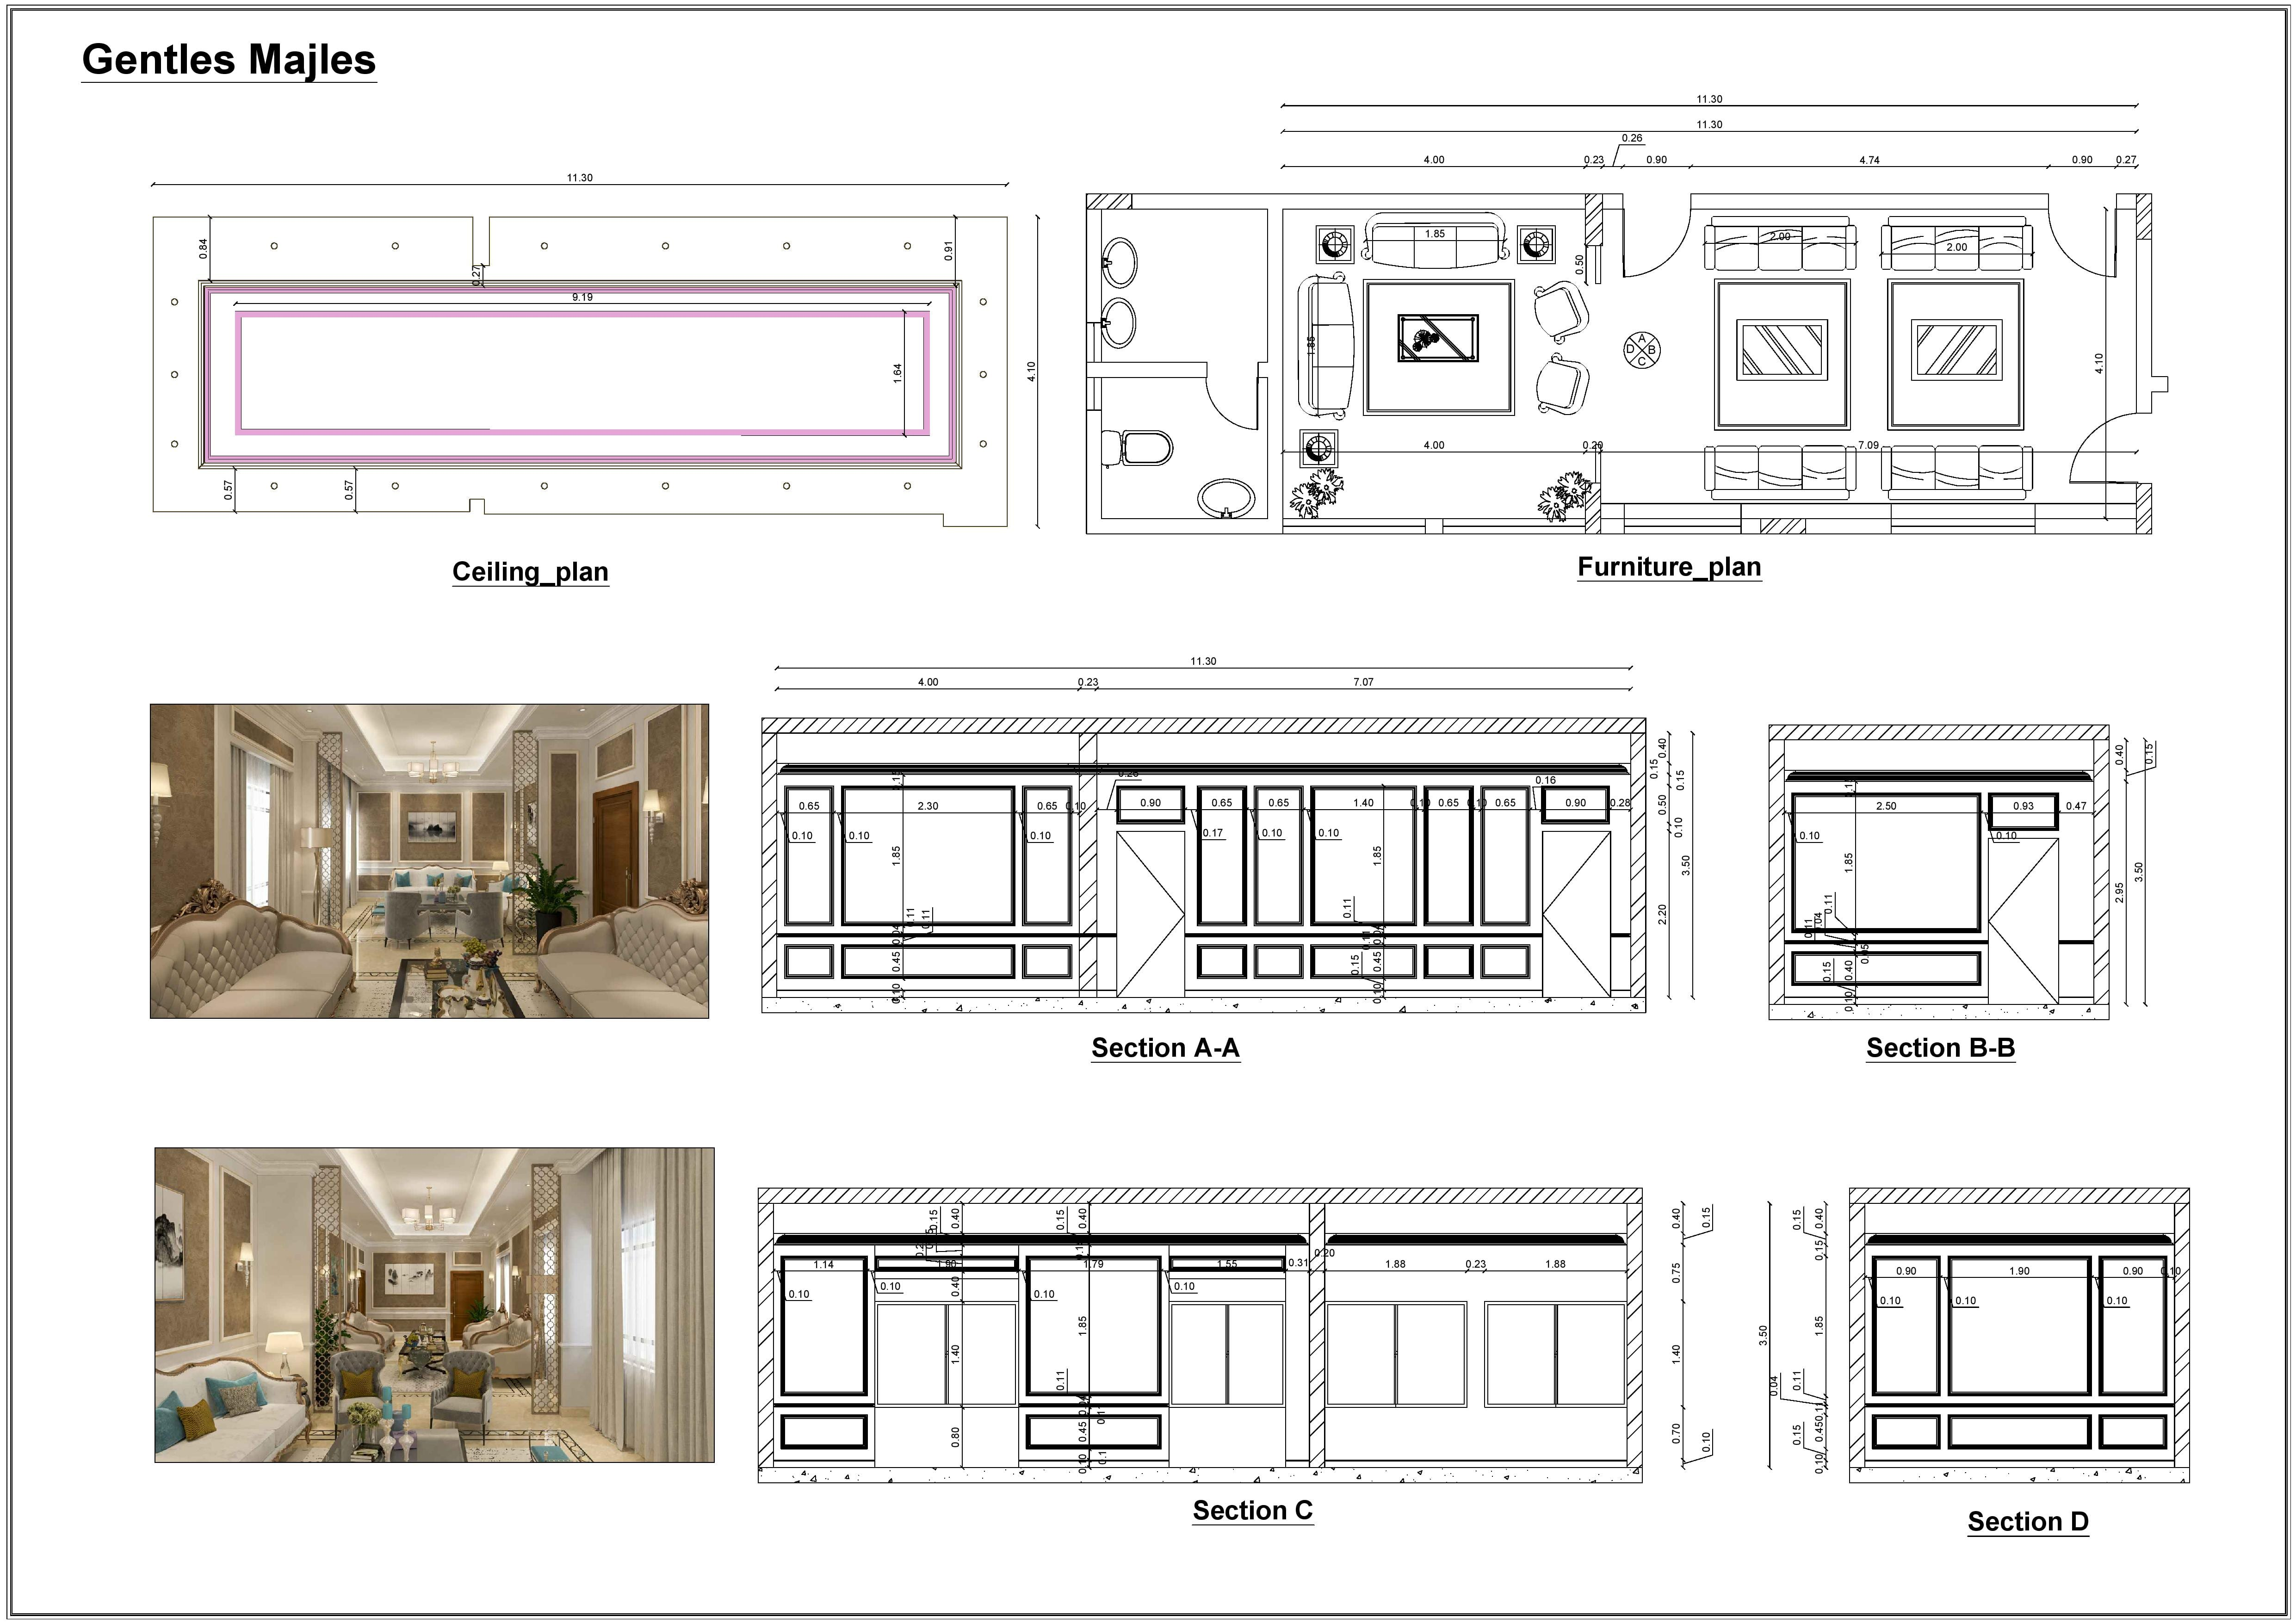 Gentels Majlis Shop_Drawings-page-001 - Furniture Ideal